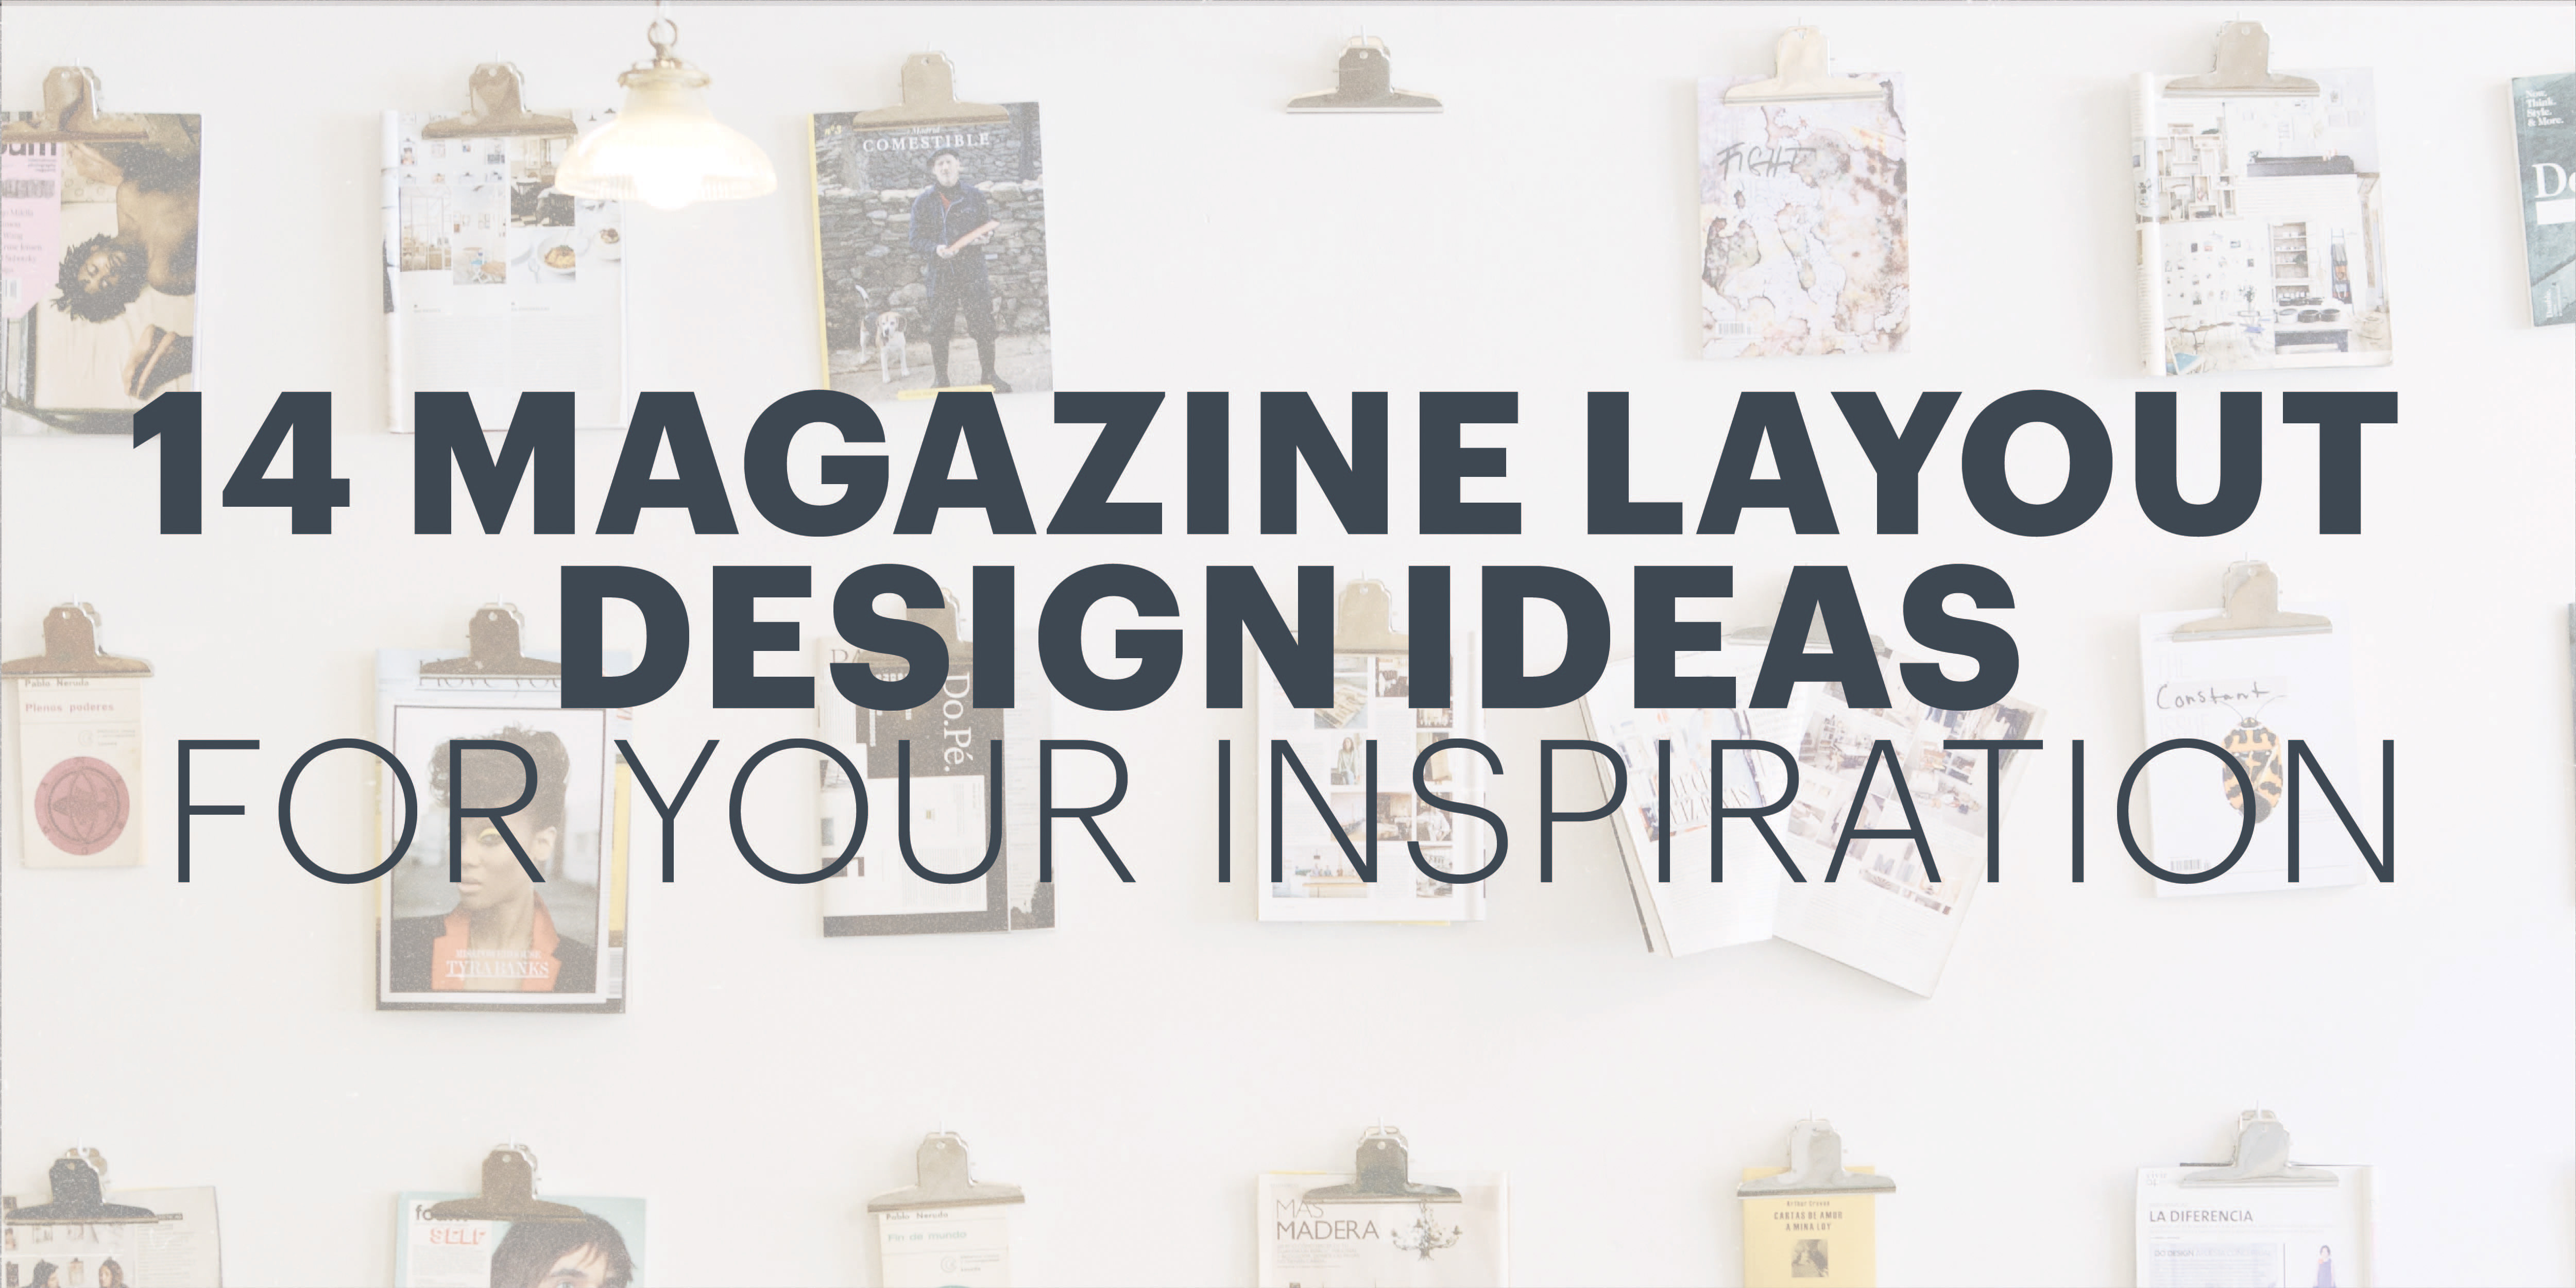 14 magazine layout design ideas for your inspirationLayout Design Ideas #1